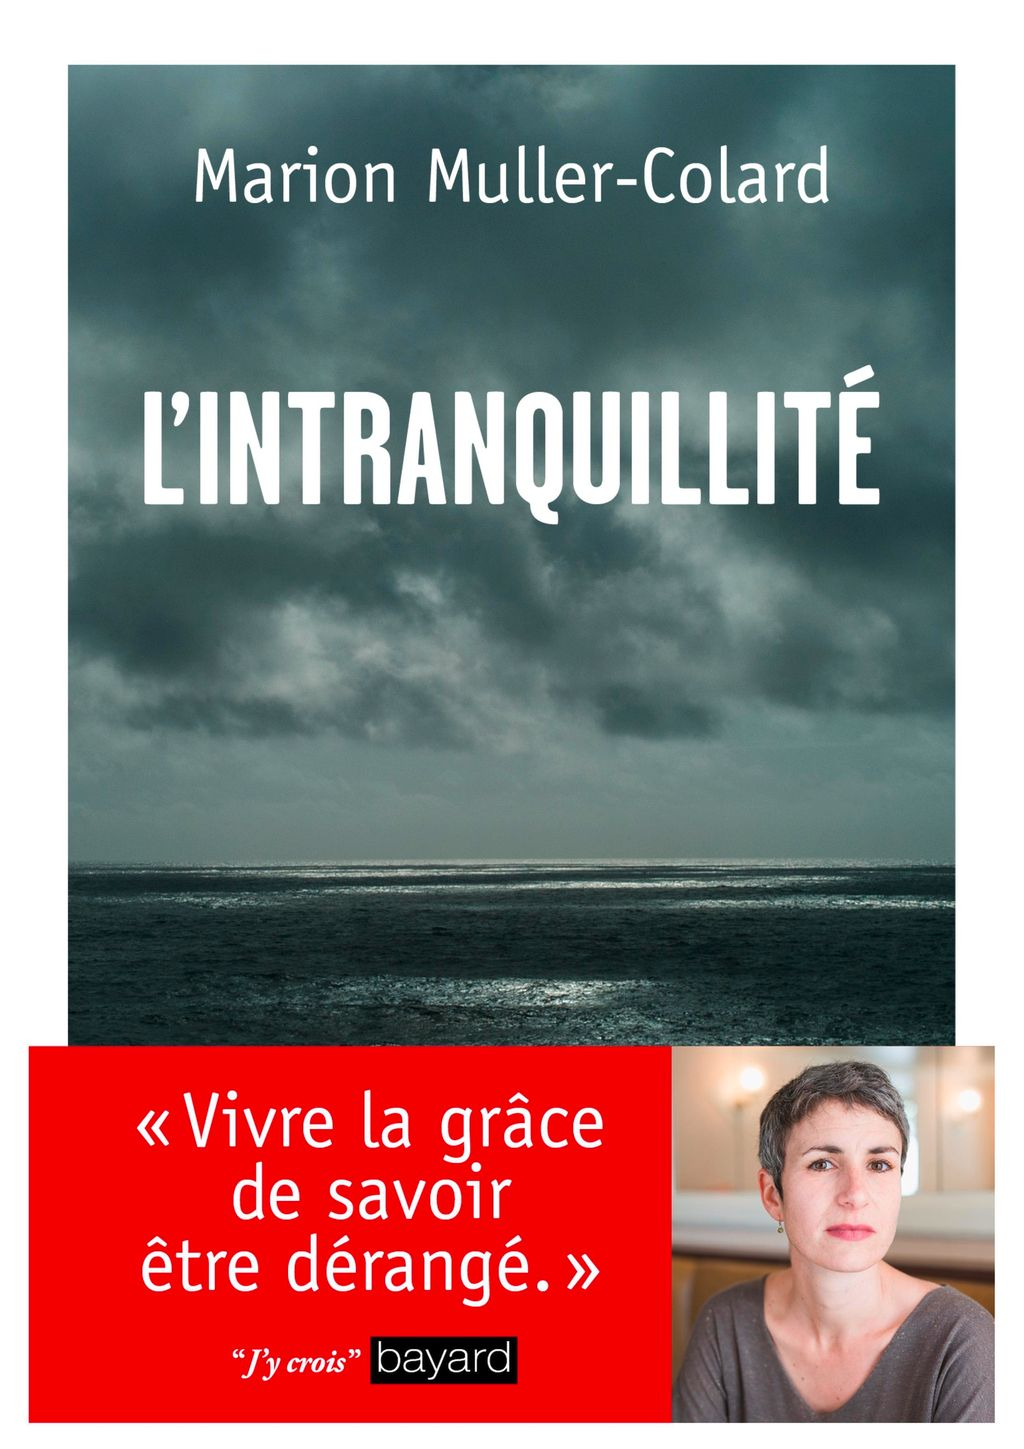 « L'intranquillité » cover